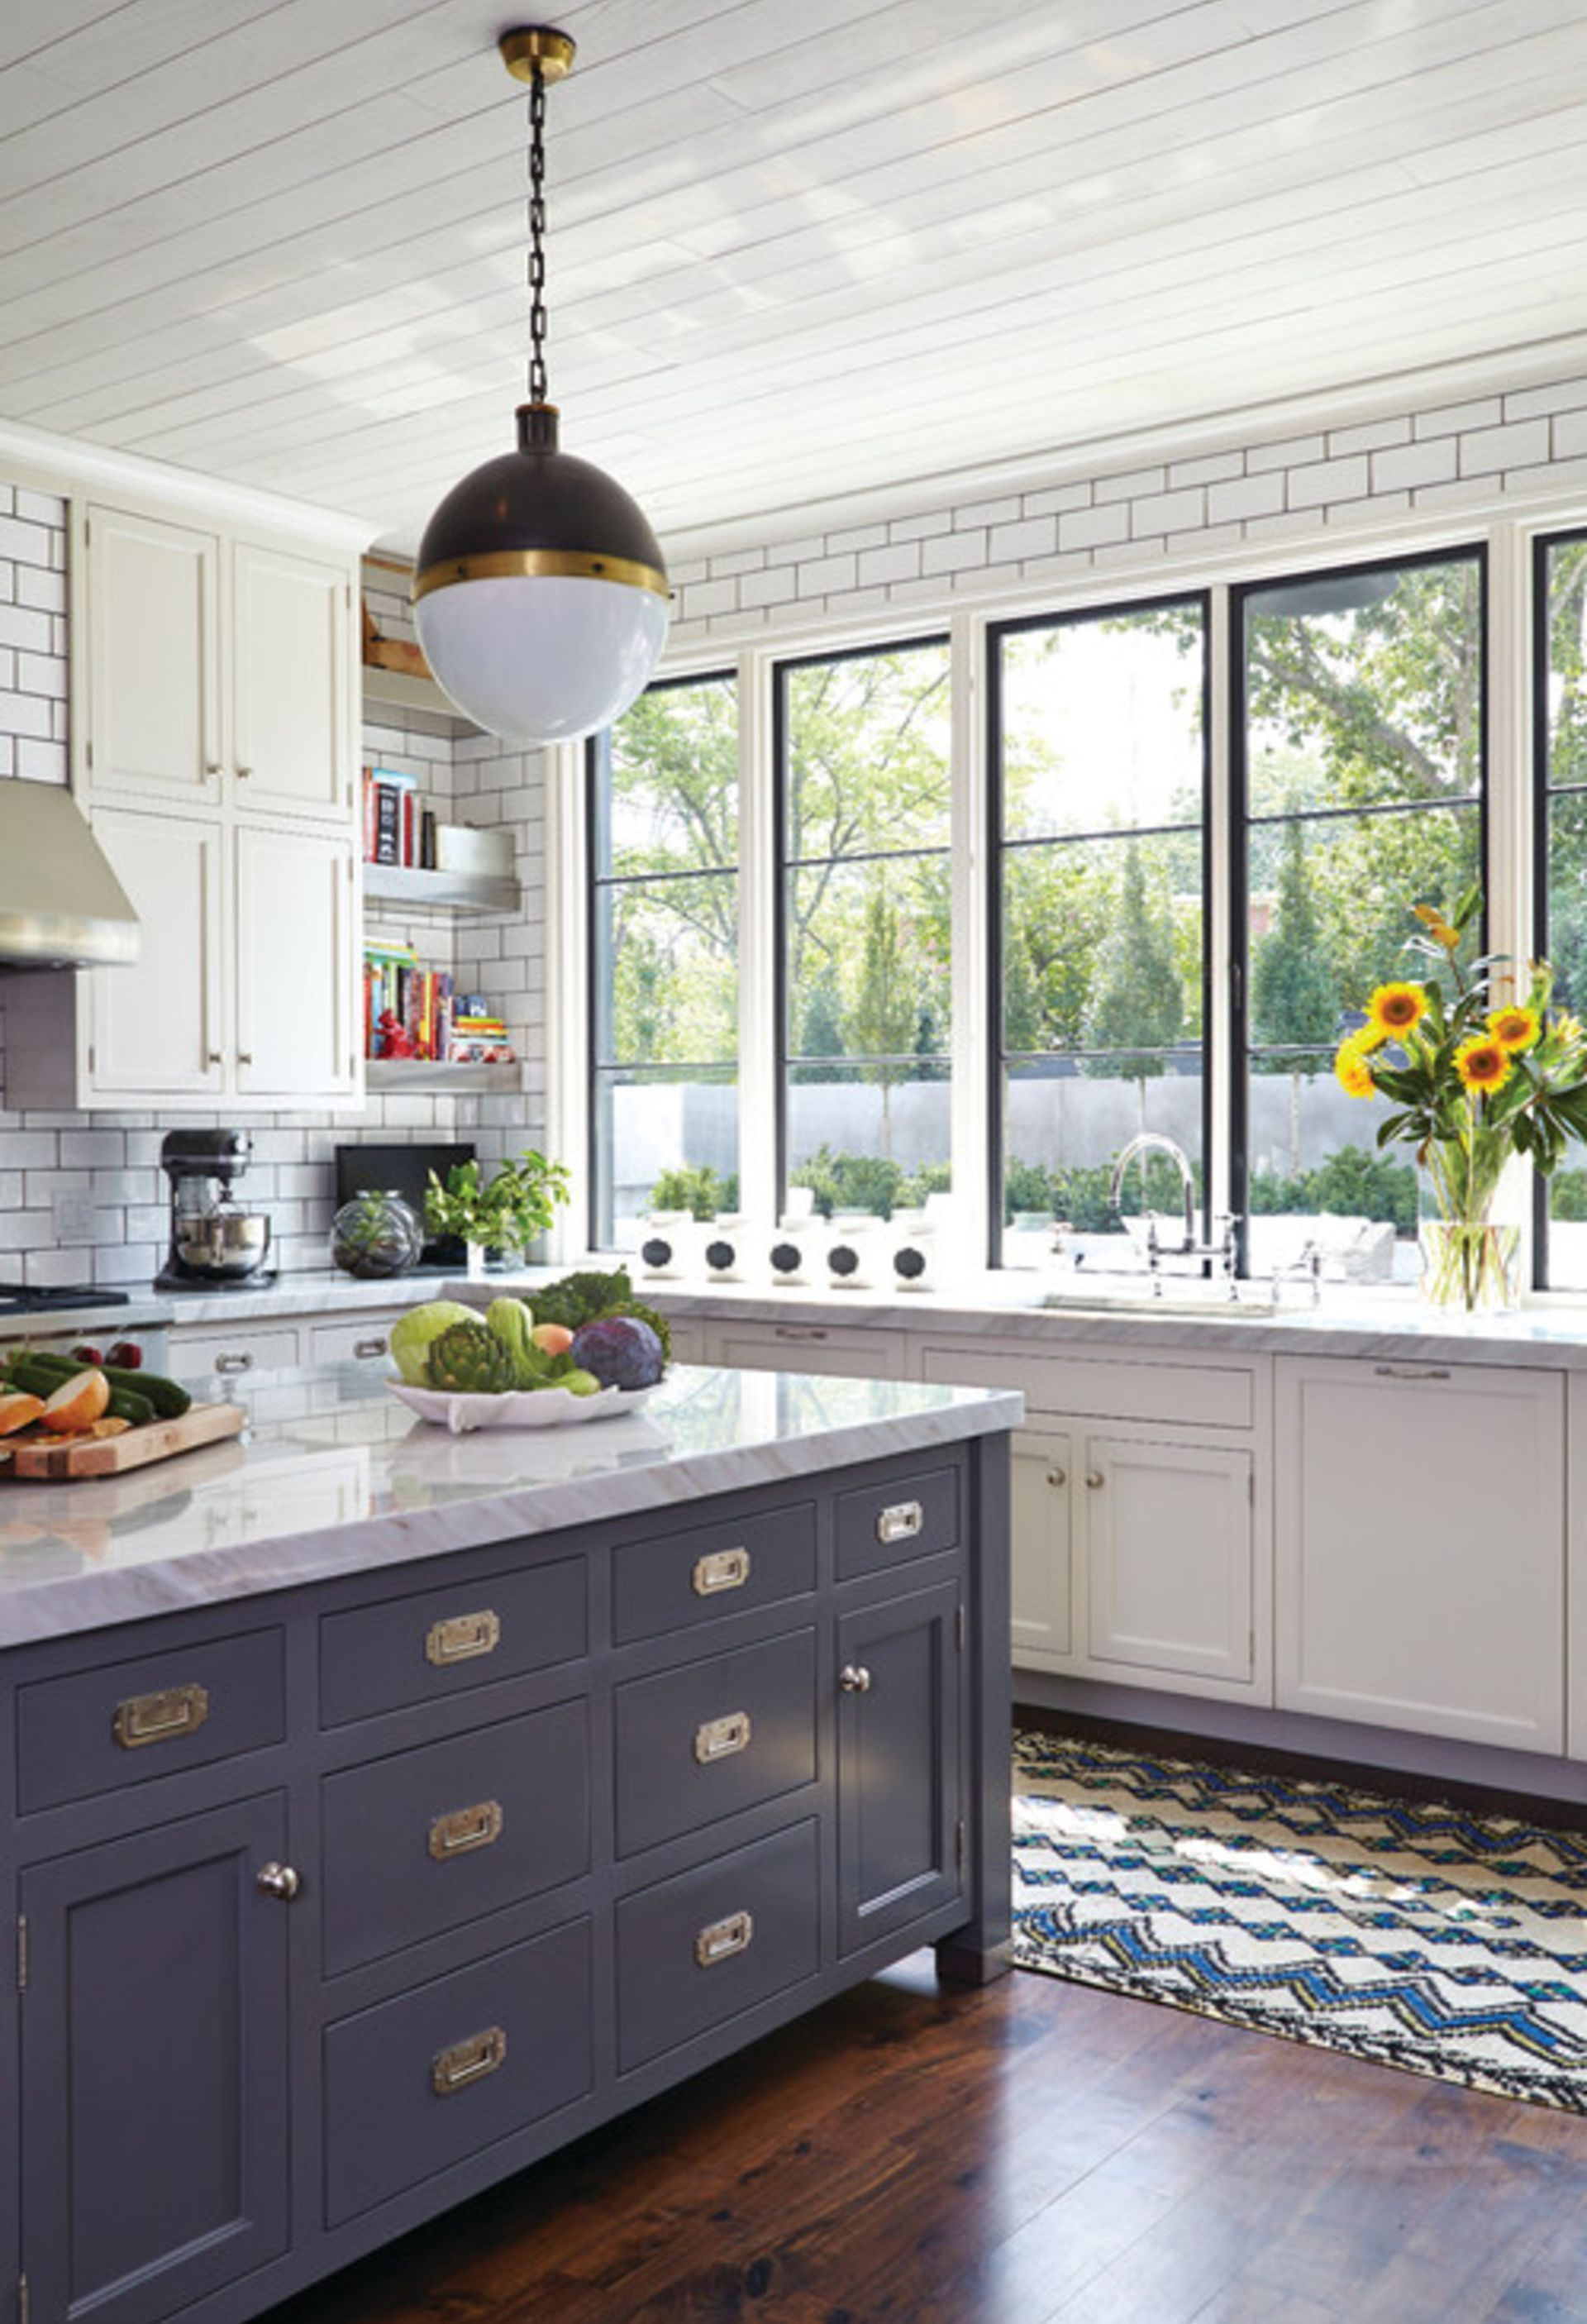 The New Trend in Kitchen Design